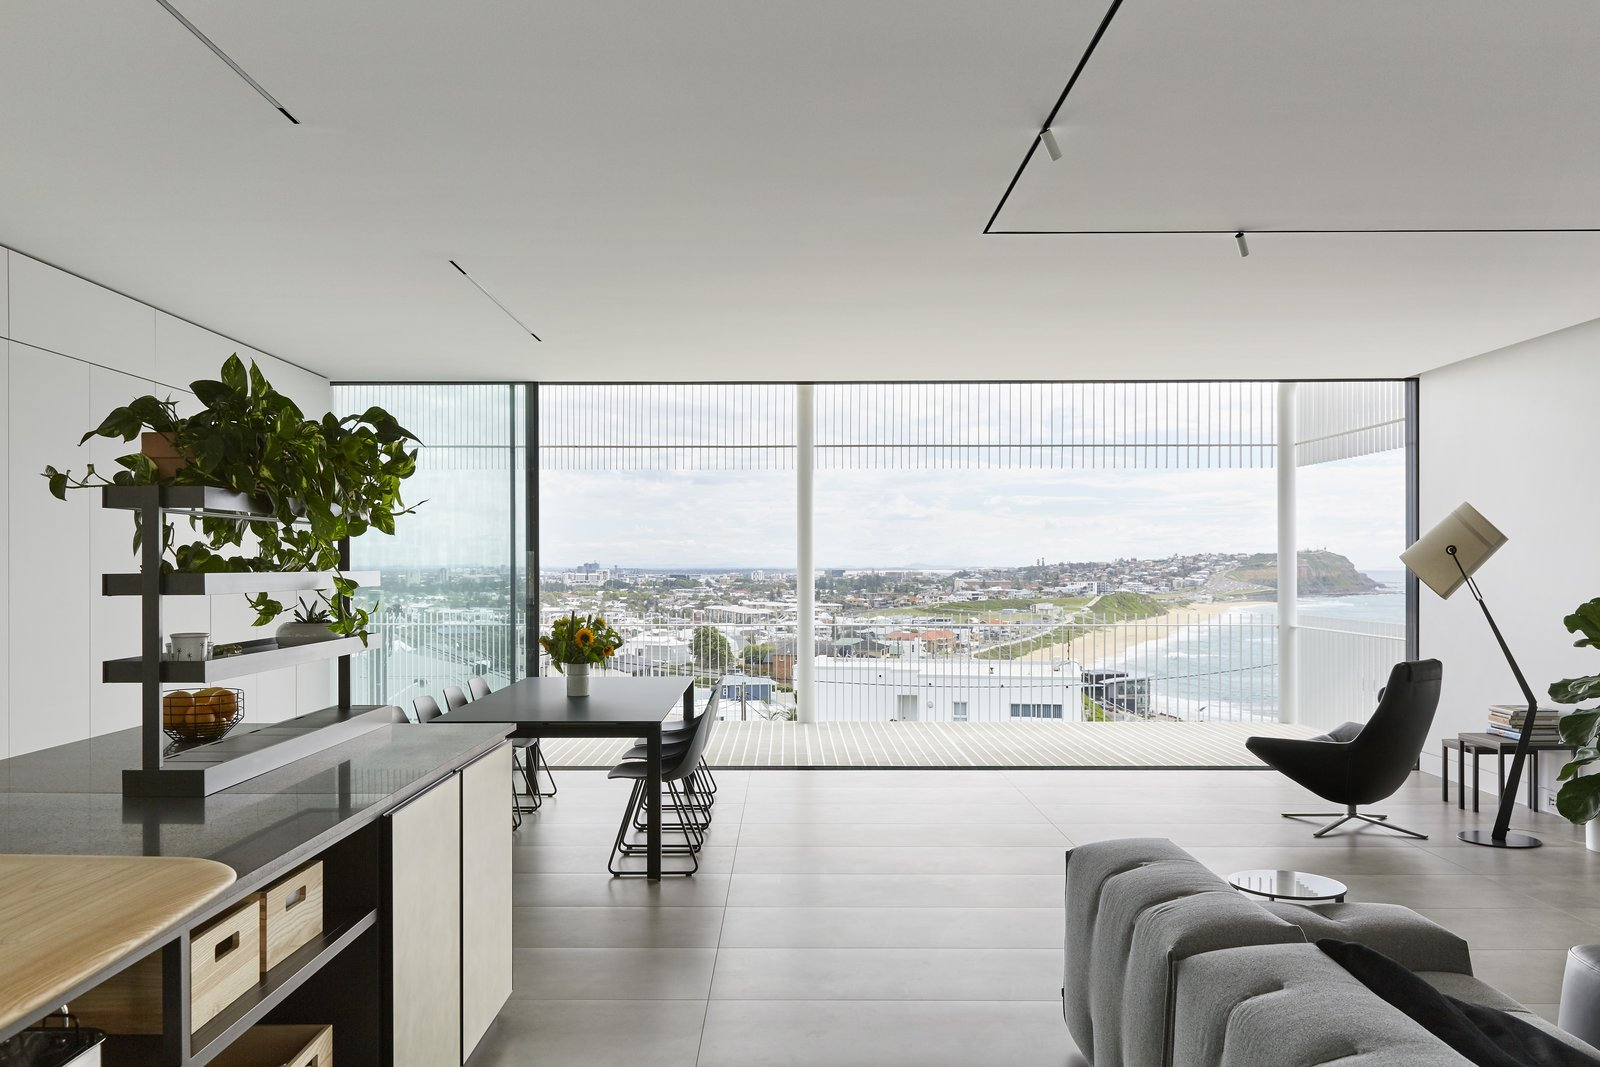 Dining Room, Chair, Table, Ceiling Lighting, and Floor Lighting A transparent balcony allows unobstructed views of the sea and Newcastle's skyline.  Photos from A Futuristic Abode in Australia Draws Inspiration From Star Wars